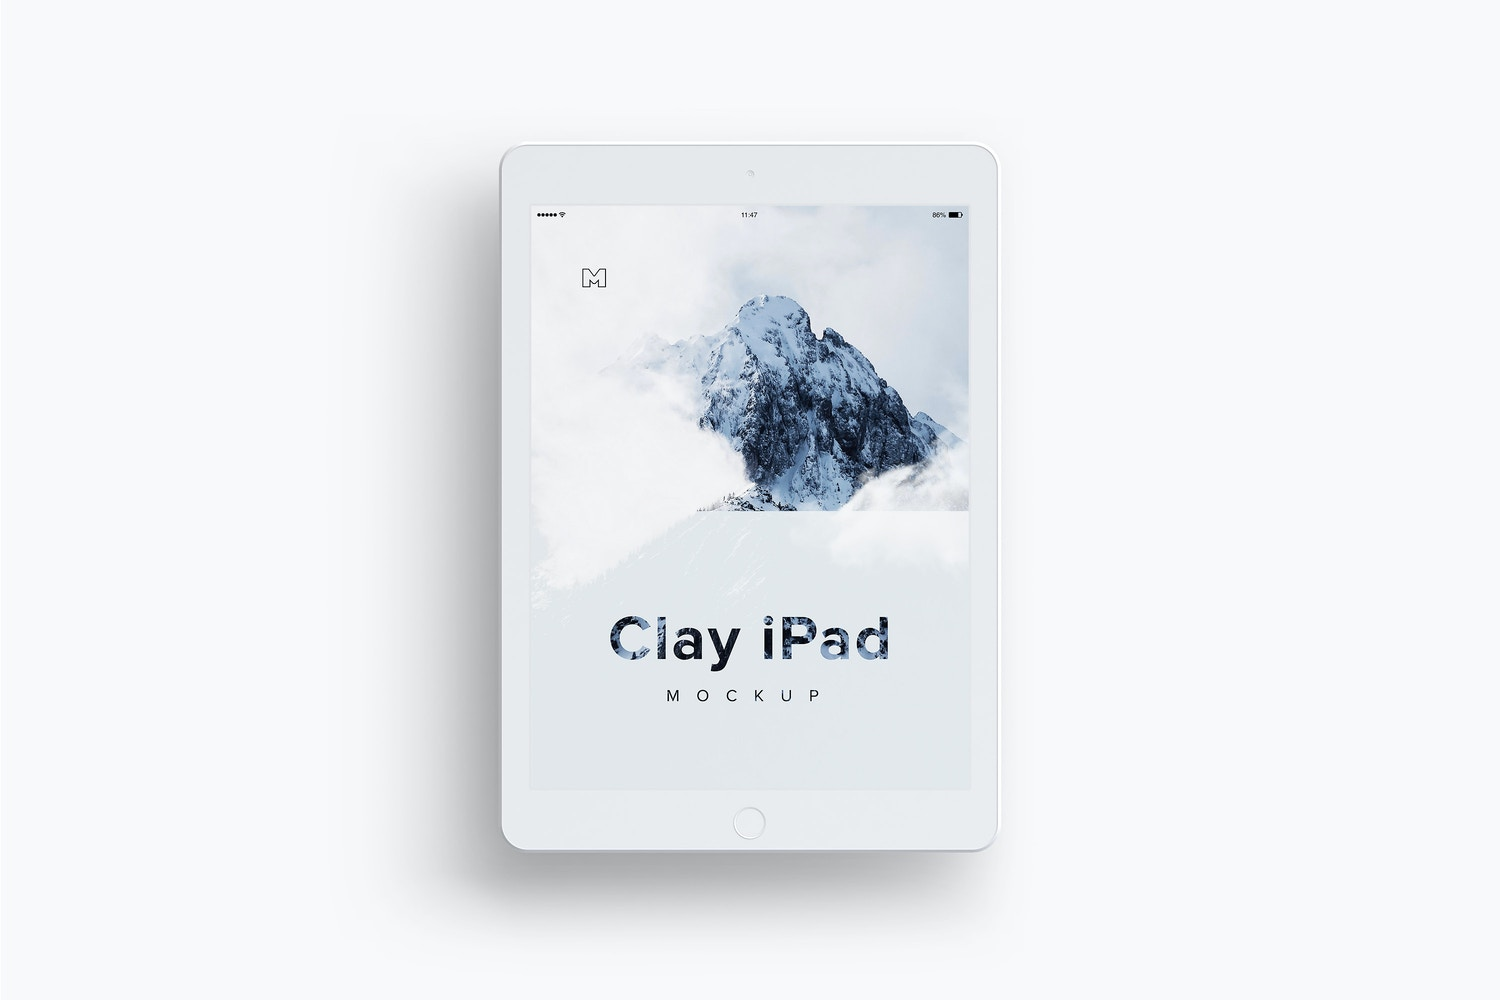 Clay iPad 9.7 Mockup 03 by Original Mockups on Original Mockups